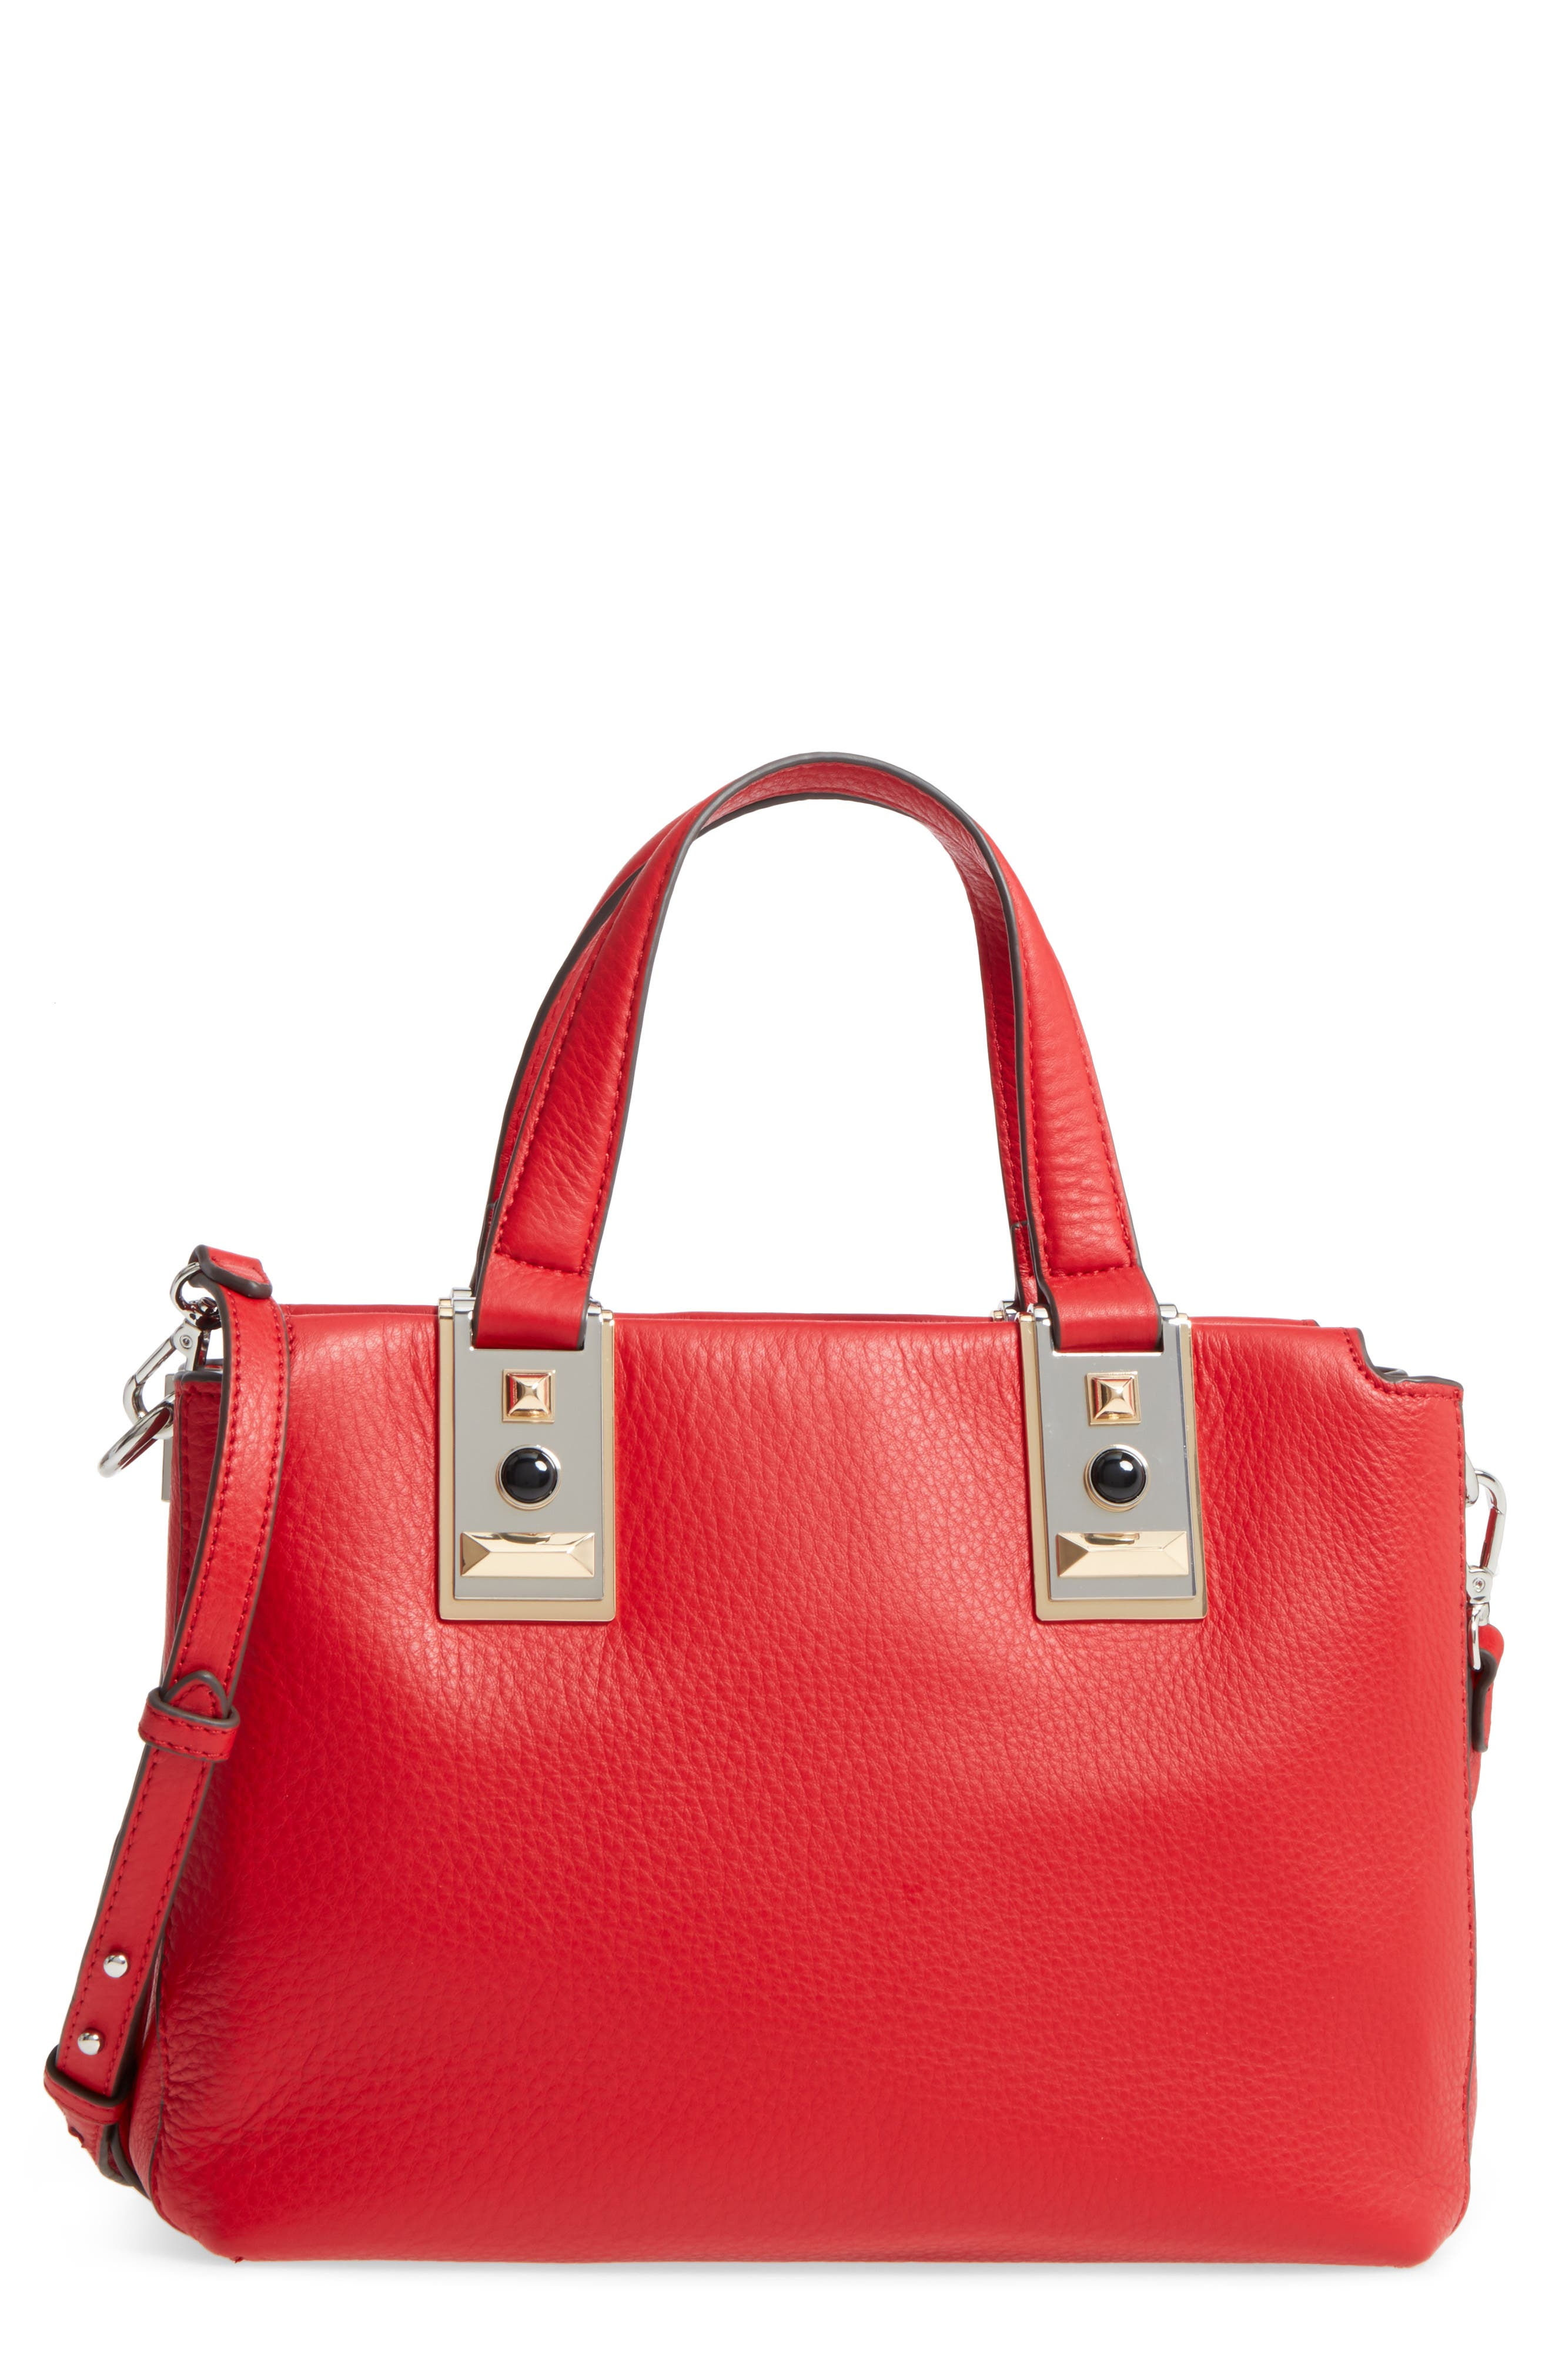 Alternate Image 1 Selected - Vince Camuto Bitty Leather Satchel